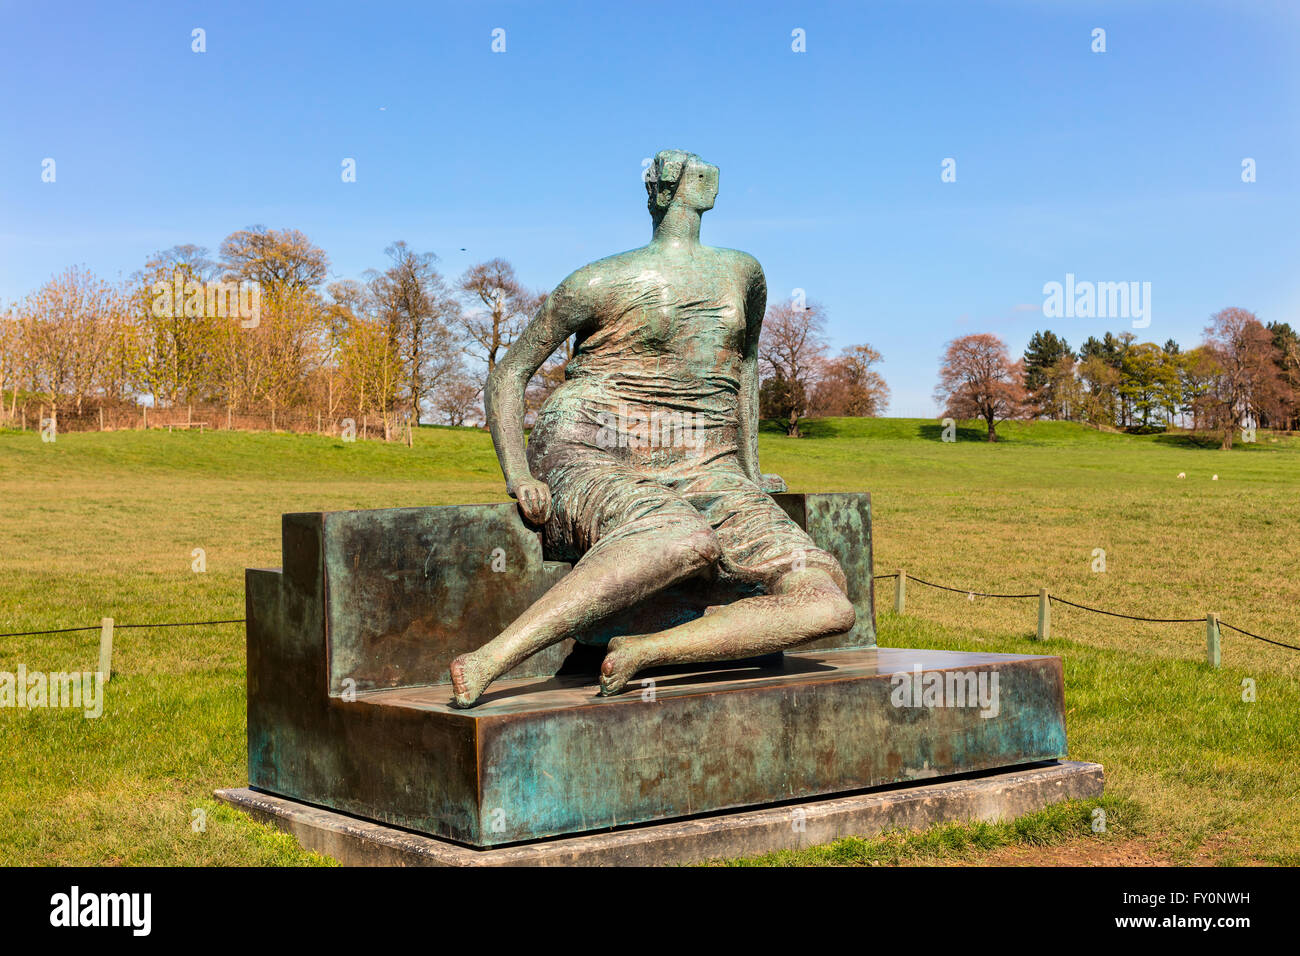 Draped Seated Woman, c1957-58 bronze sculpture by Henry Moore in Yorkshire Sculpture Park. - Stock Image